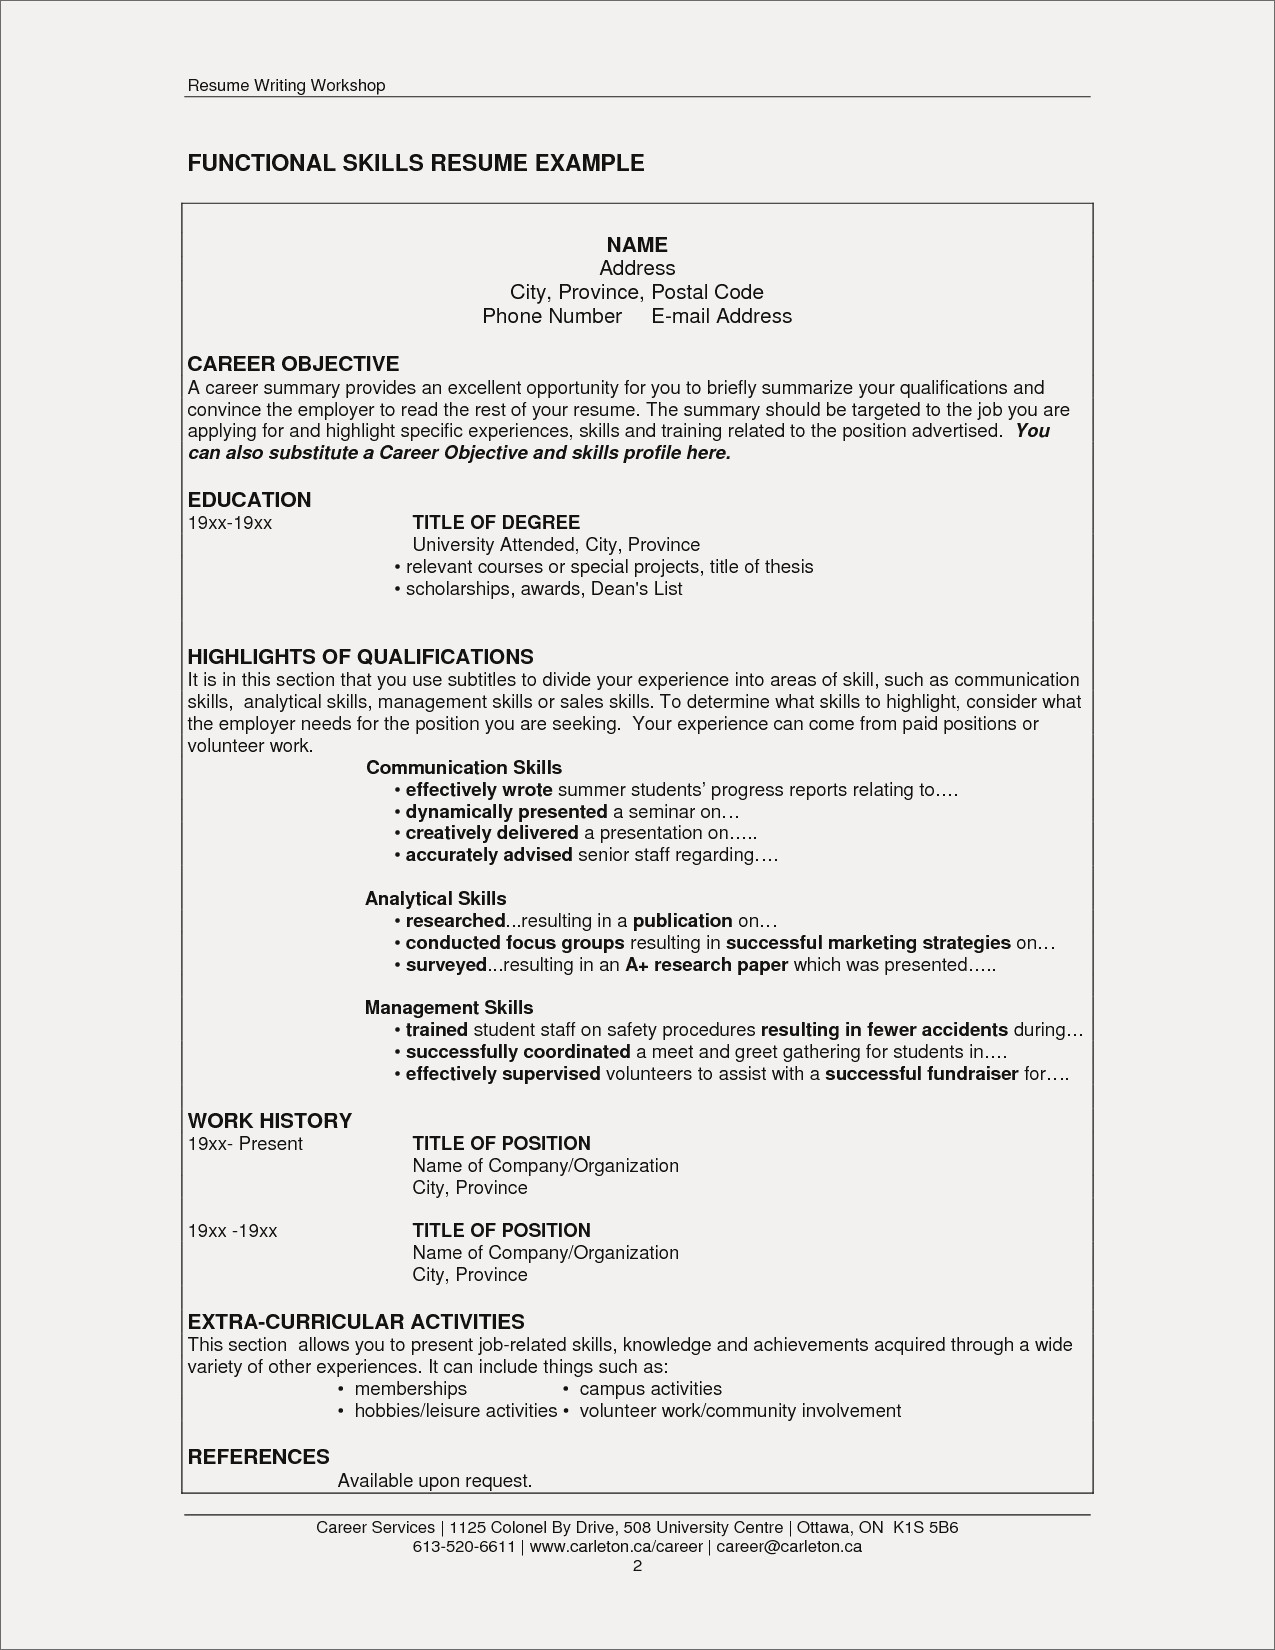 Resume Ideas for Skills - Resume Skill Set Examples New Resume Skills and Abilities Beautiful